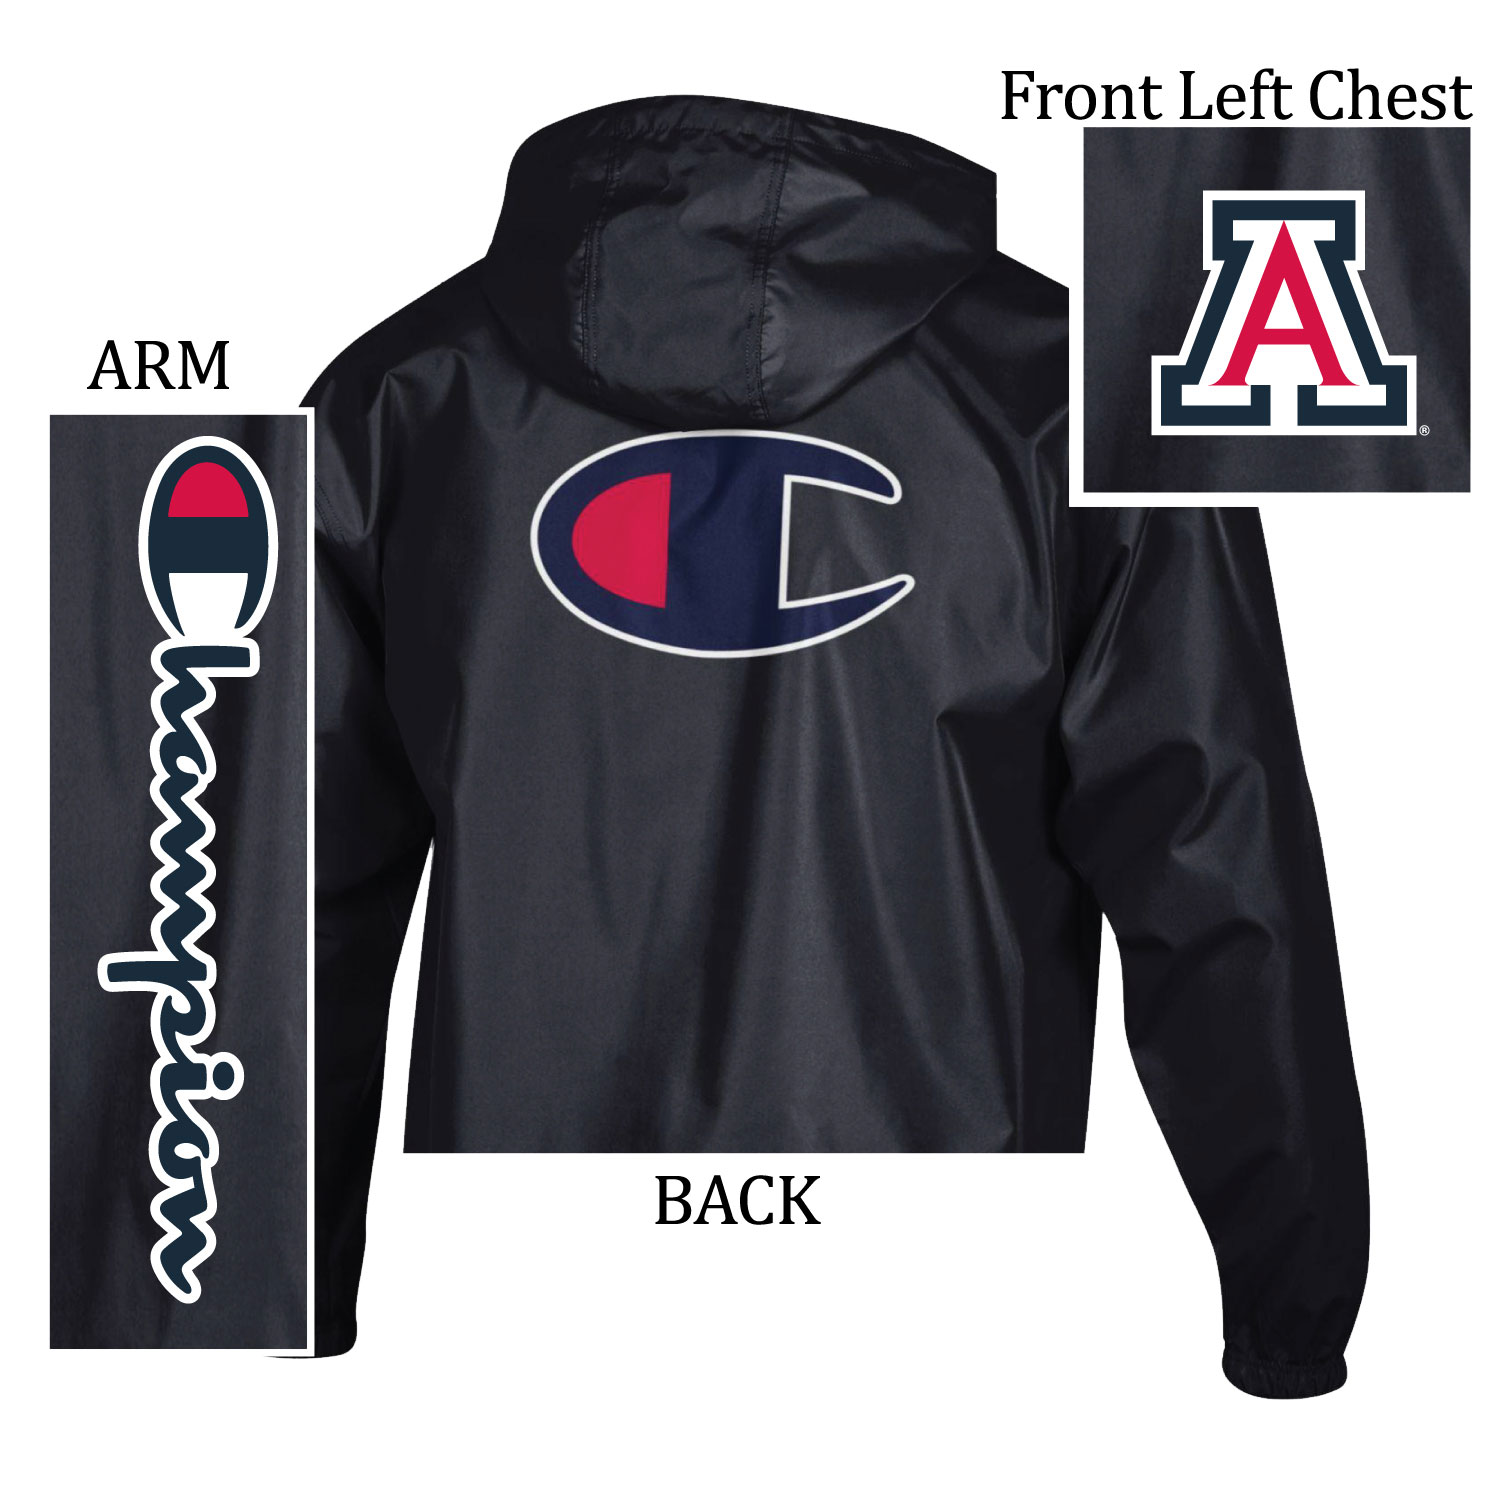 688ca0243 Champion: Arizona Wildcats Printer Packable Jacket - Black